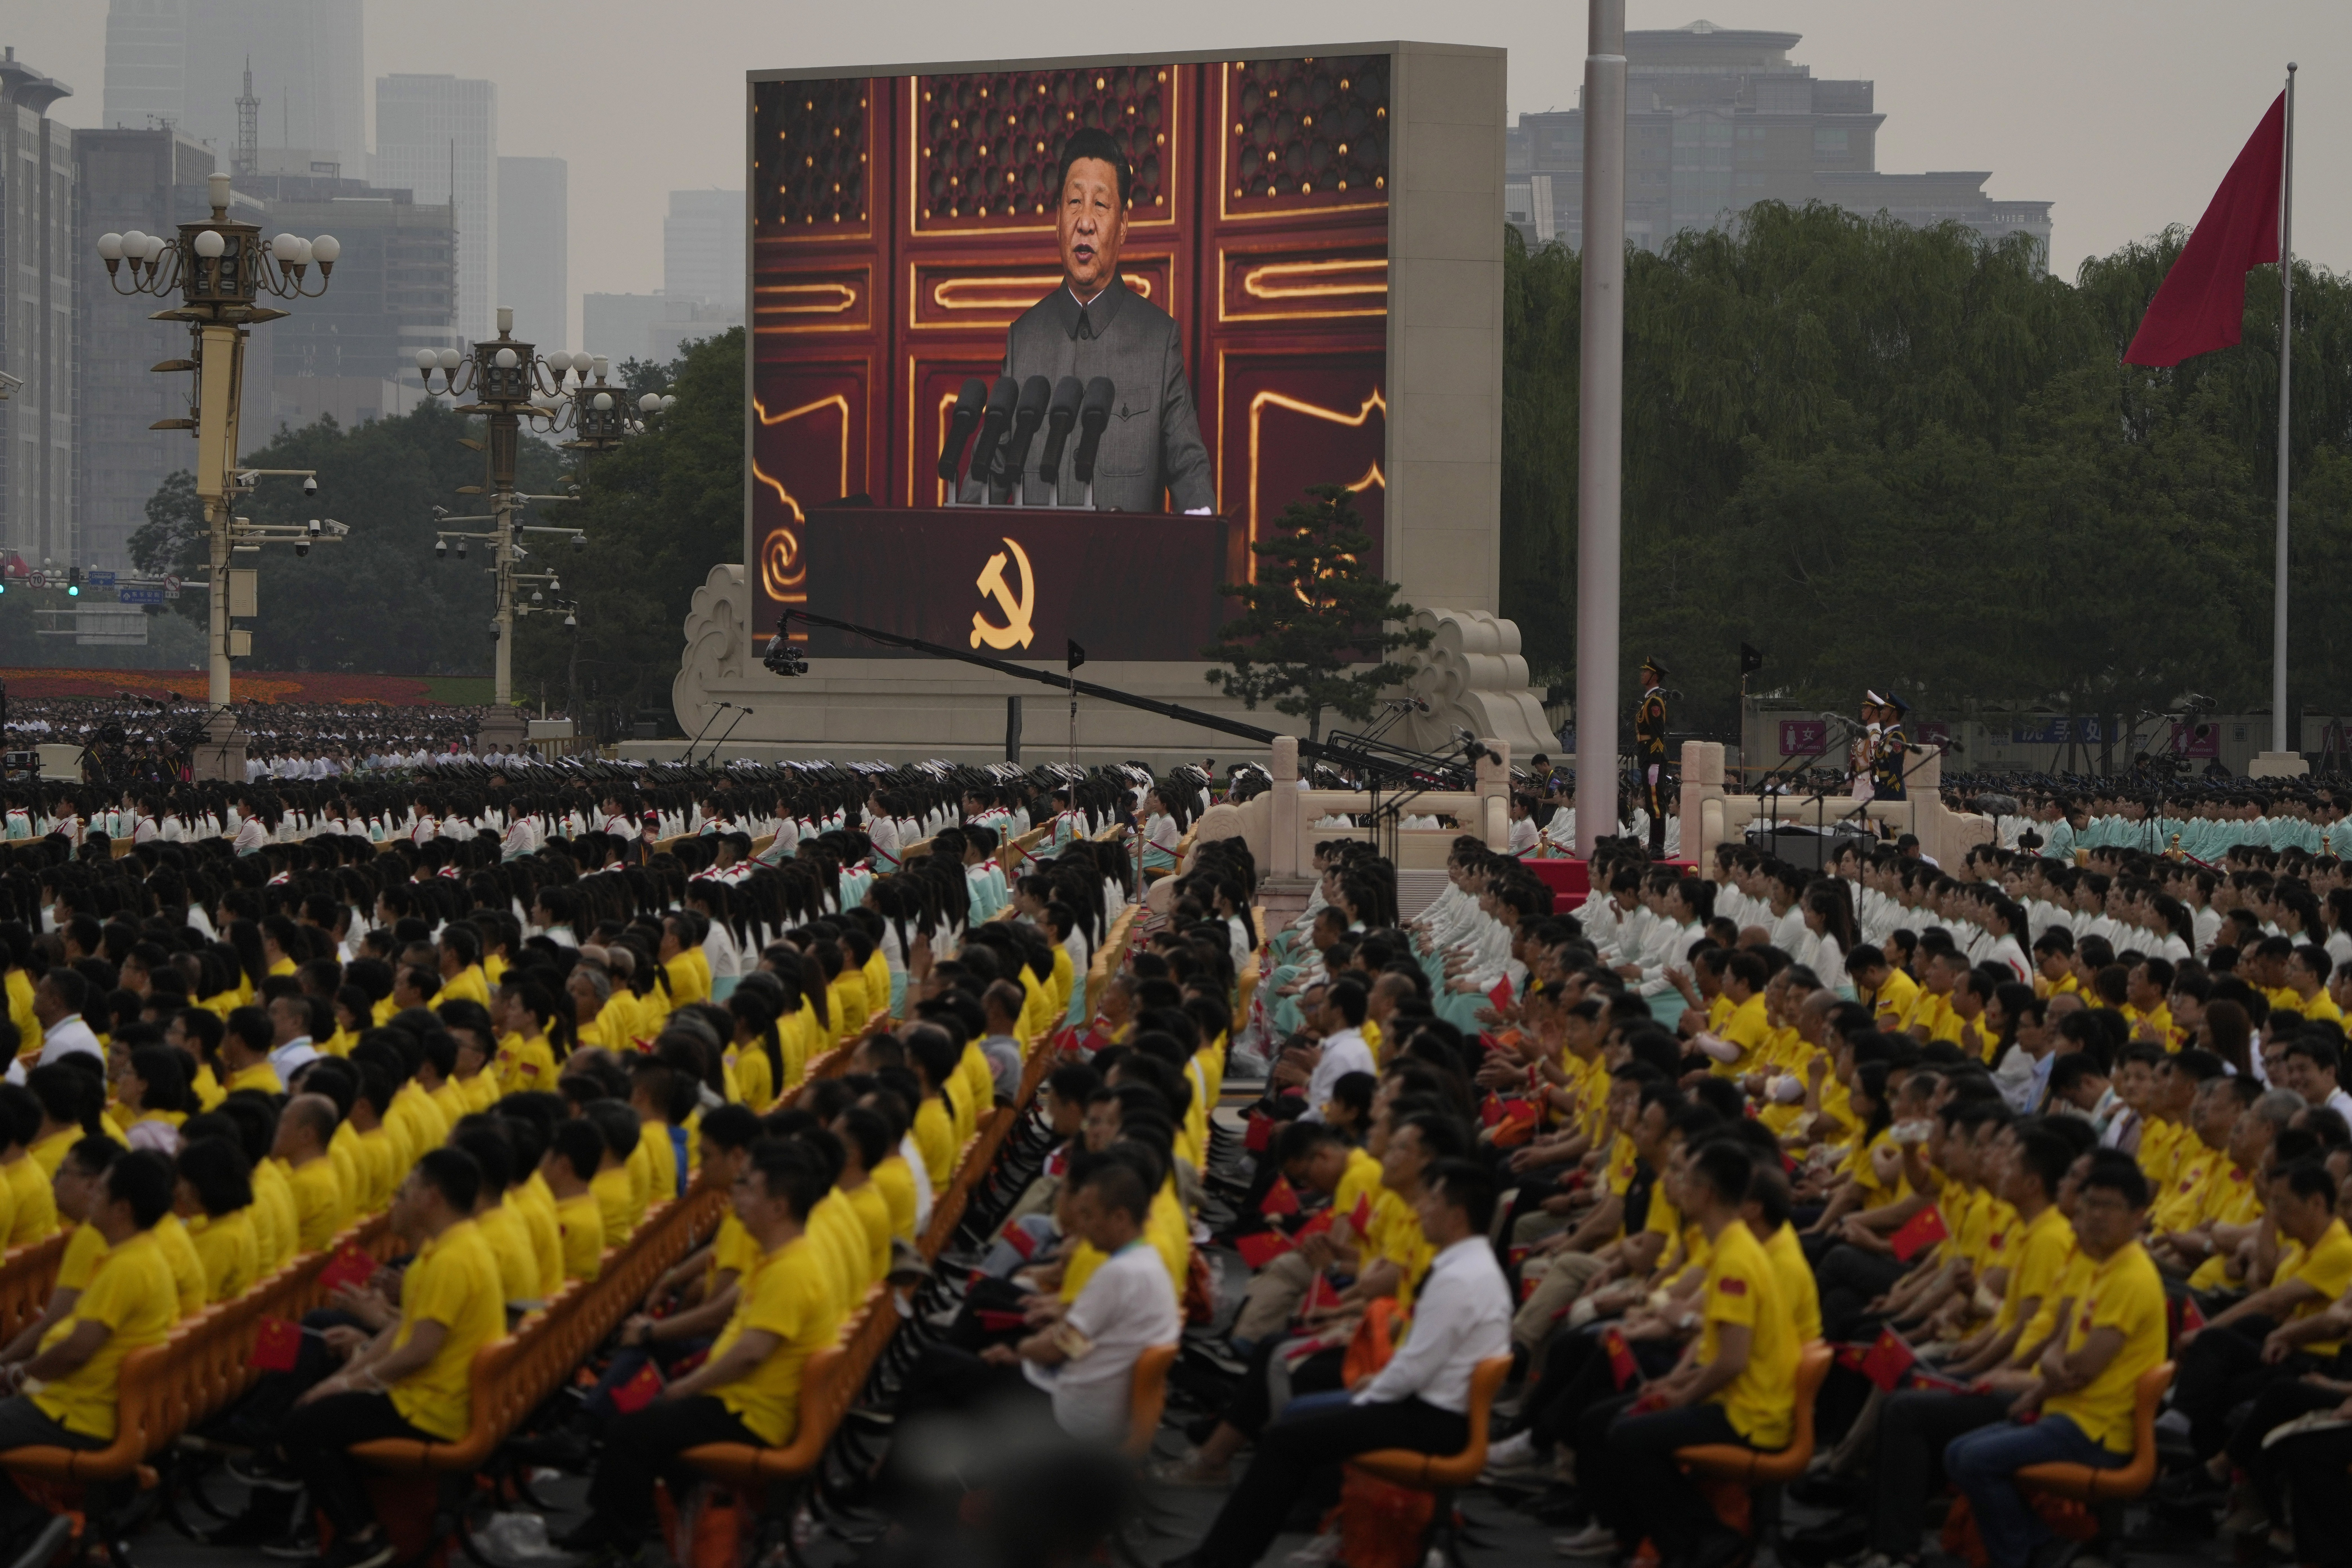 A screen shows Chinese President Xi Jinping speaking during Thursday's ceremony.